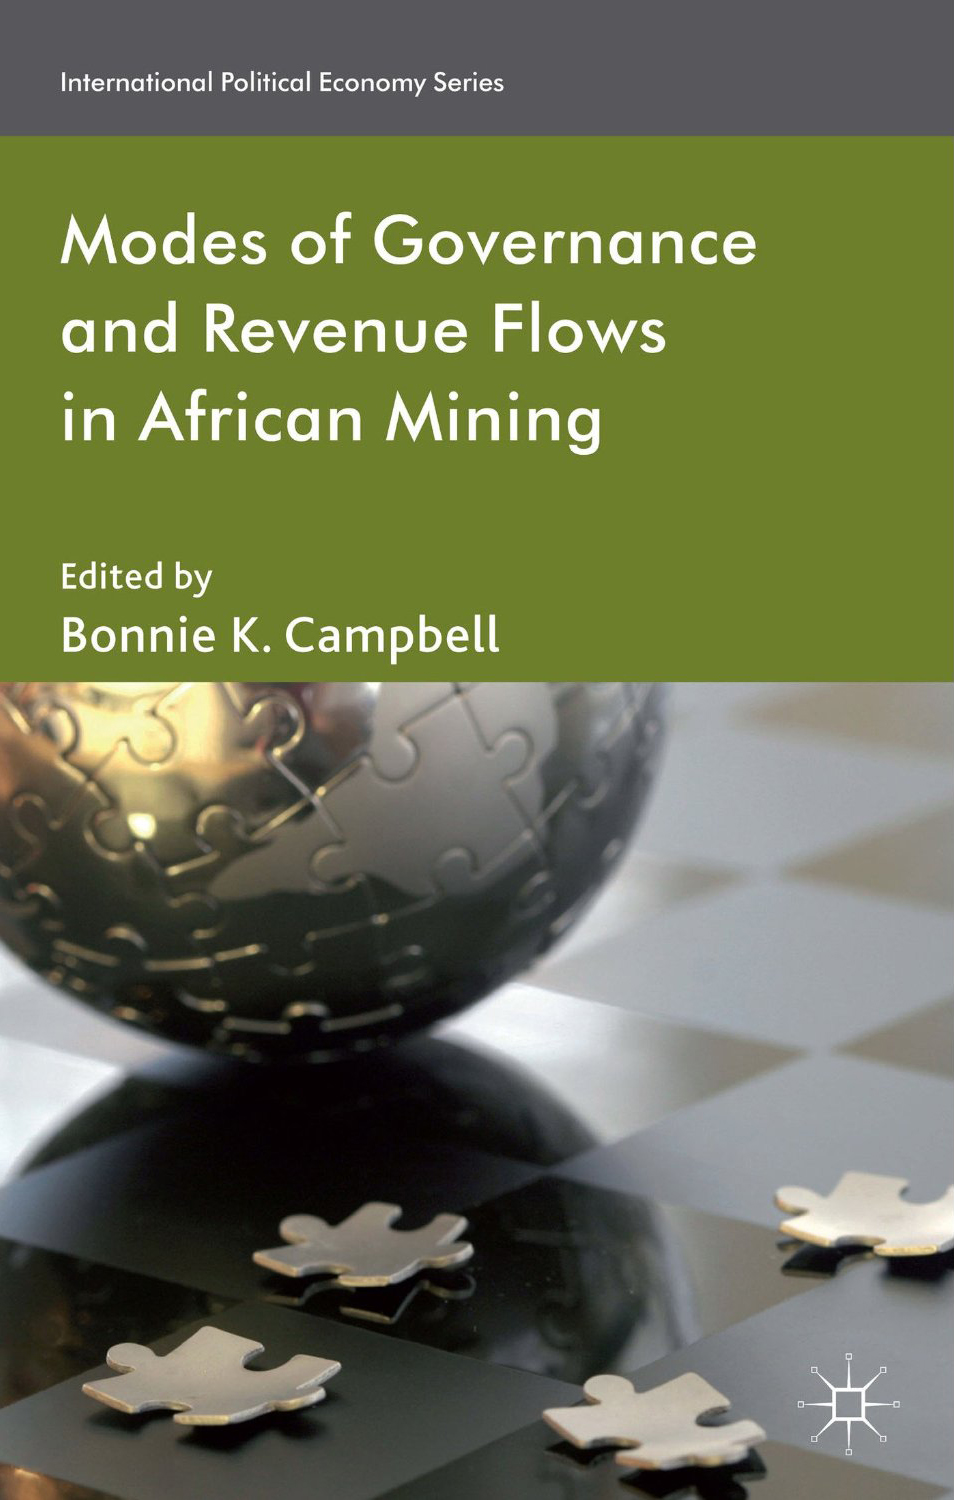 Modes of Governance and Revenue Flows in African Mining